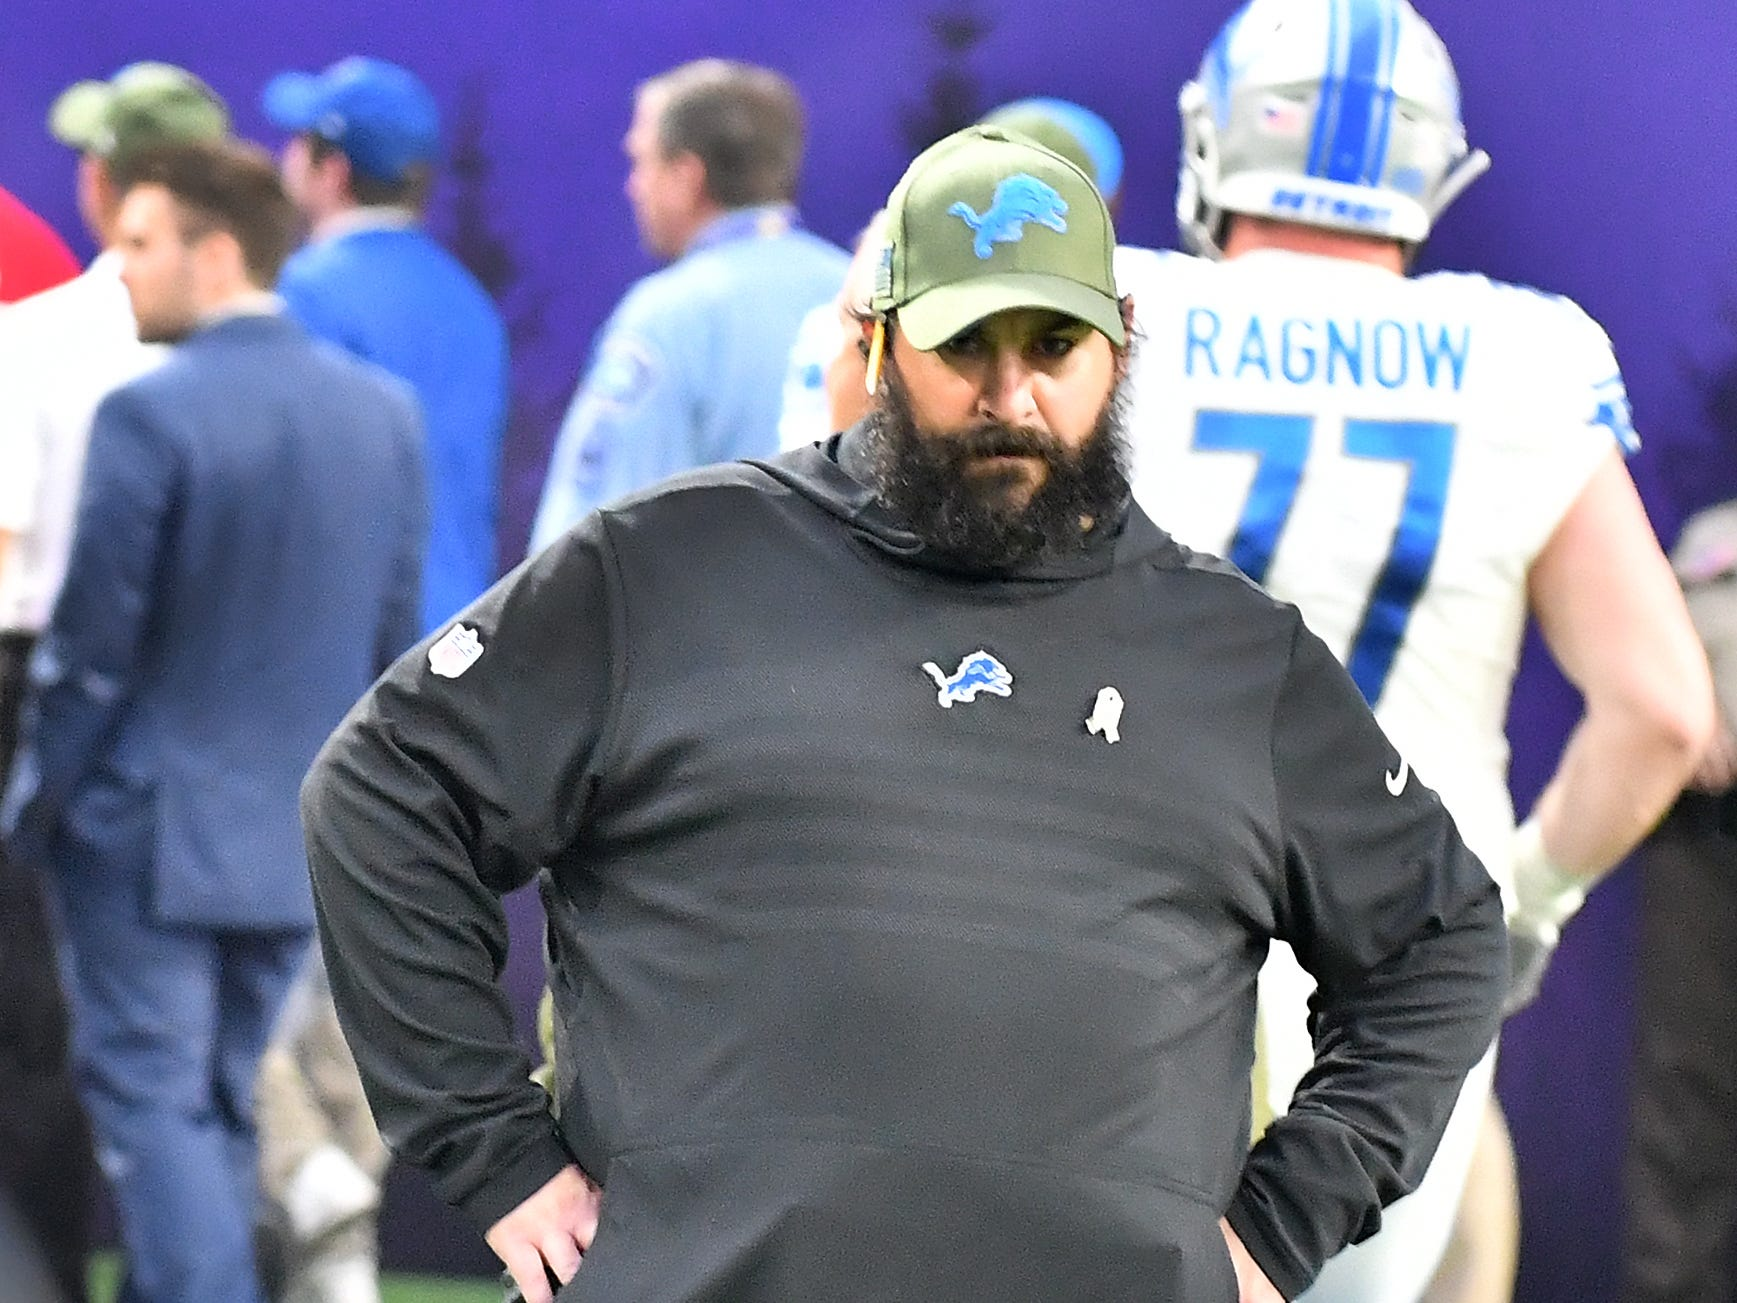 Detroit Lions head coach stands on the field waiting till all his players leave the field after losing to the Vikings 24-9.